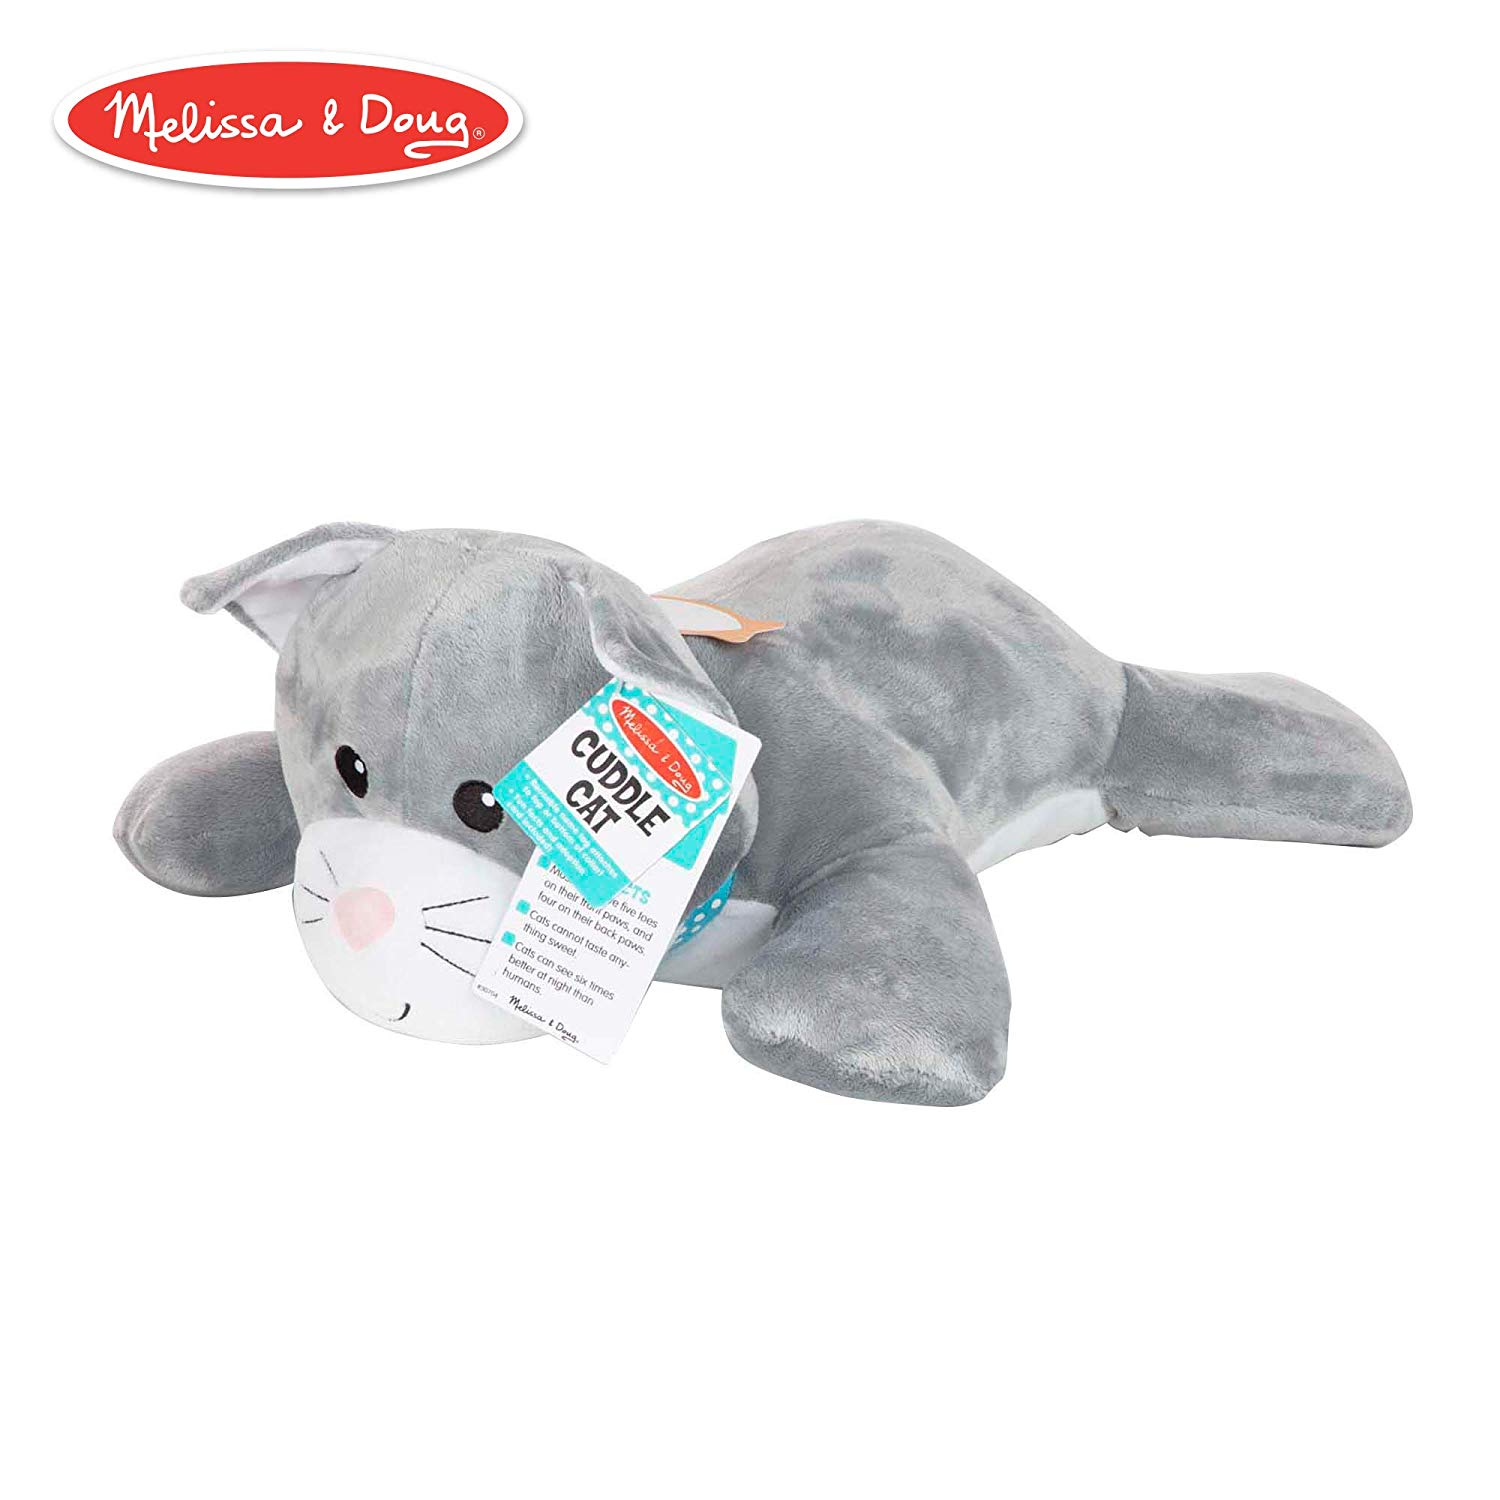 61% off Melissa & Doug Puppets Cuddle Cat Jumbo Plush Stuffed Animal £7.81 Amazon Prime +£4.49 Non Prime